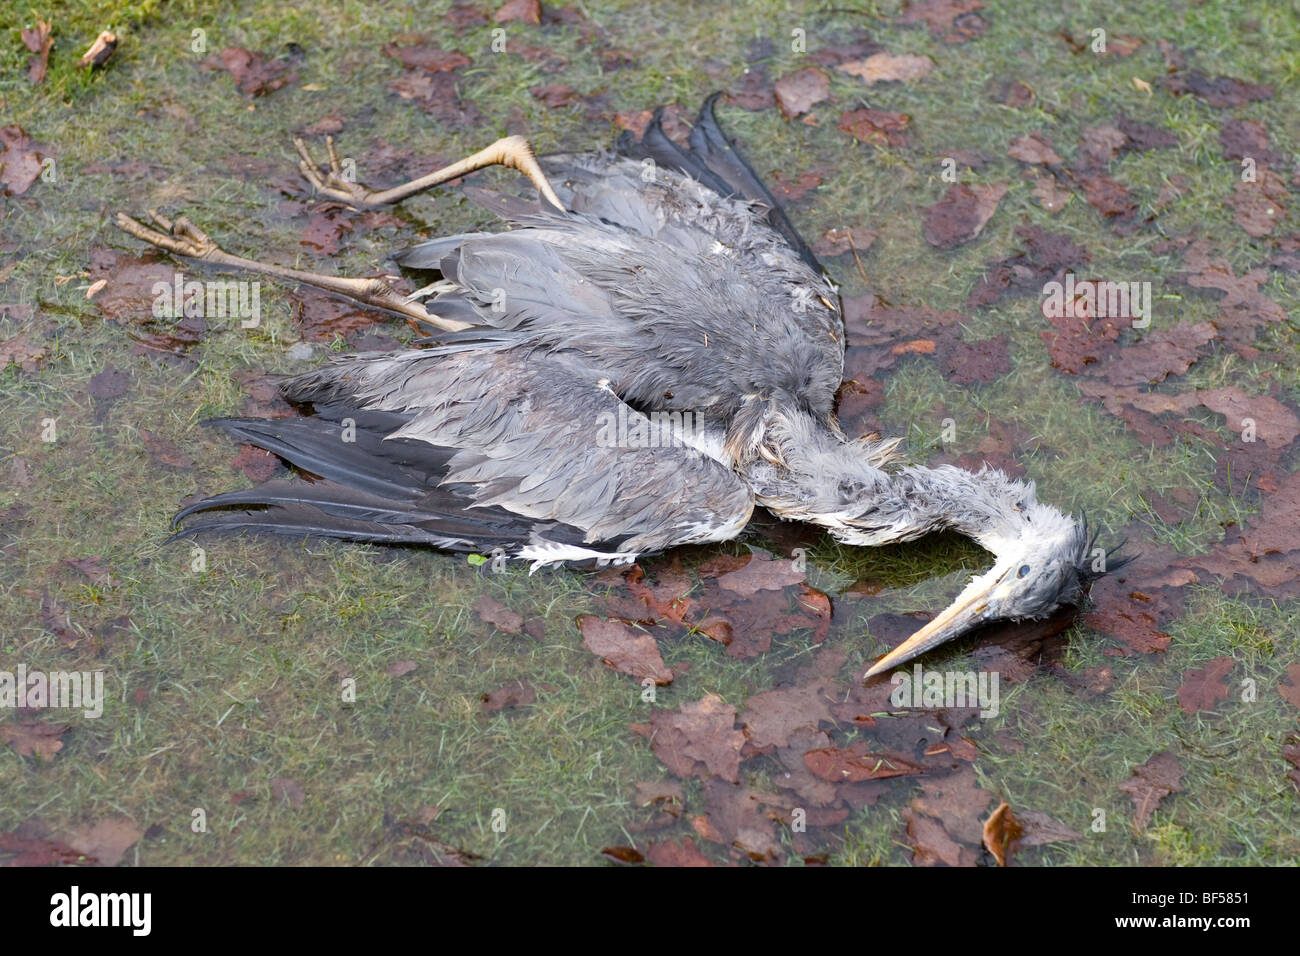 Grey Heron (Ardea cinerea). Death from starvation and winter cold (Hypothermia). February. Norfolk. England. - Stock Image